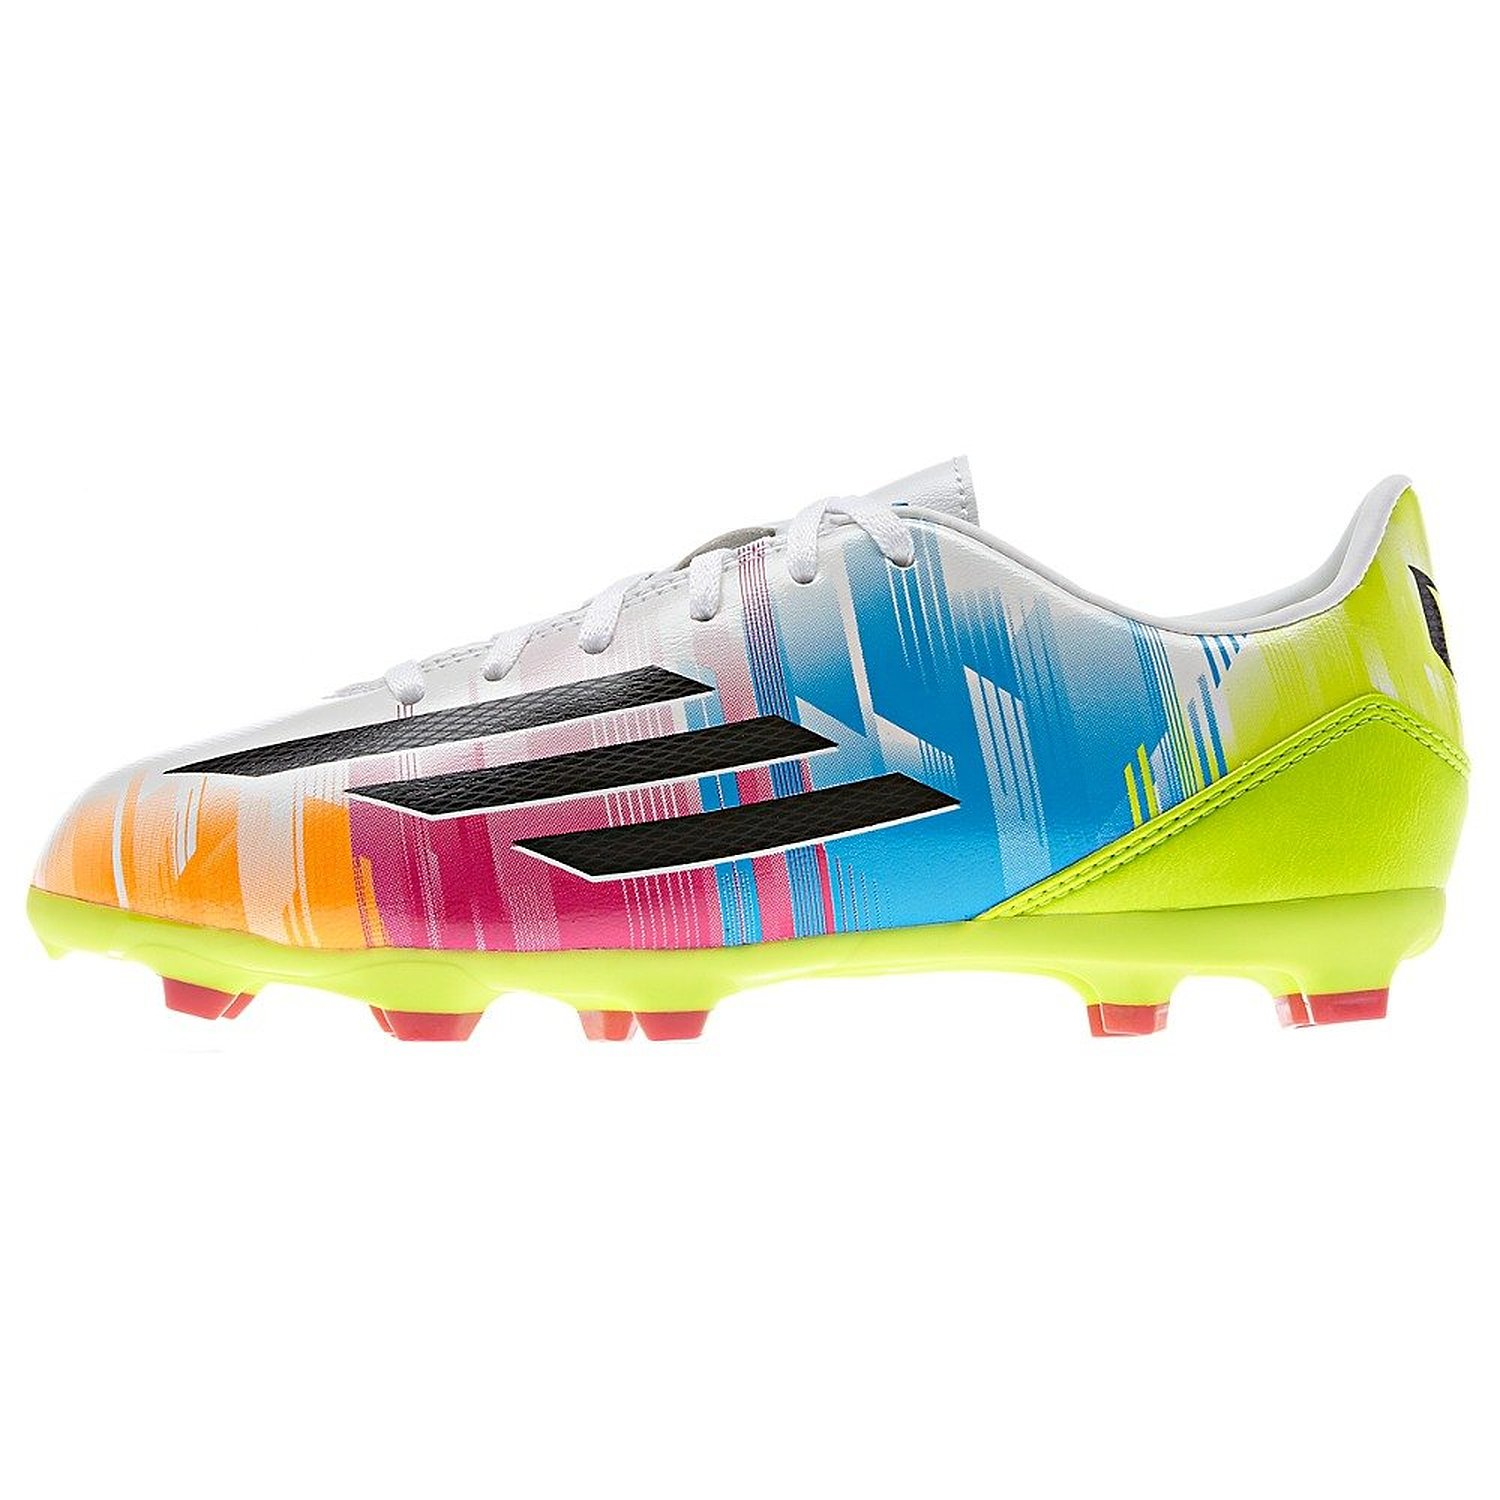 39fbecdf5 Buy Adidas F10 TRX FG (Messi) Soccer Shoes - Mens in Cheap Price on ...